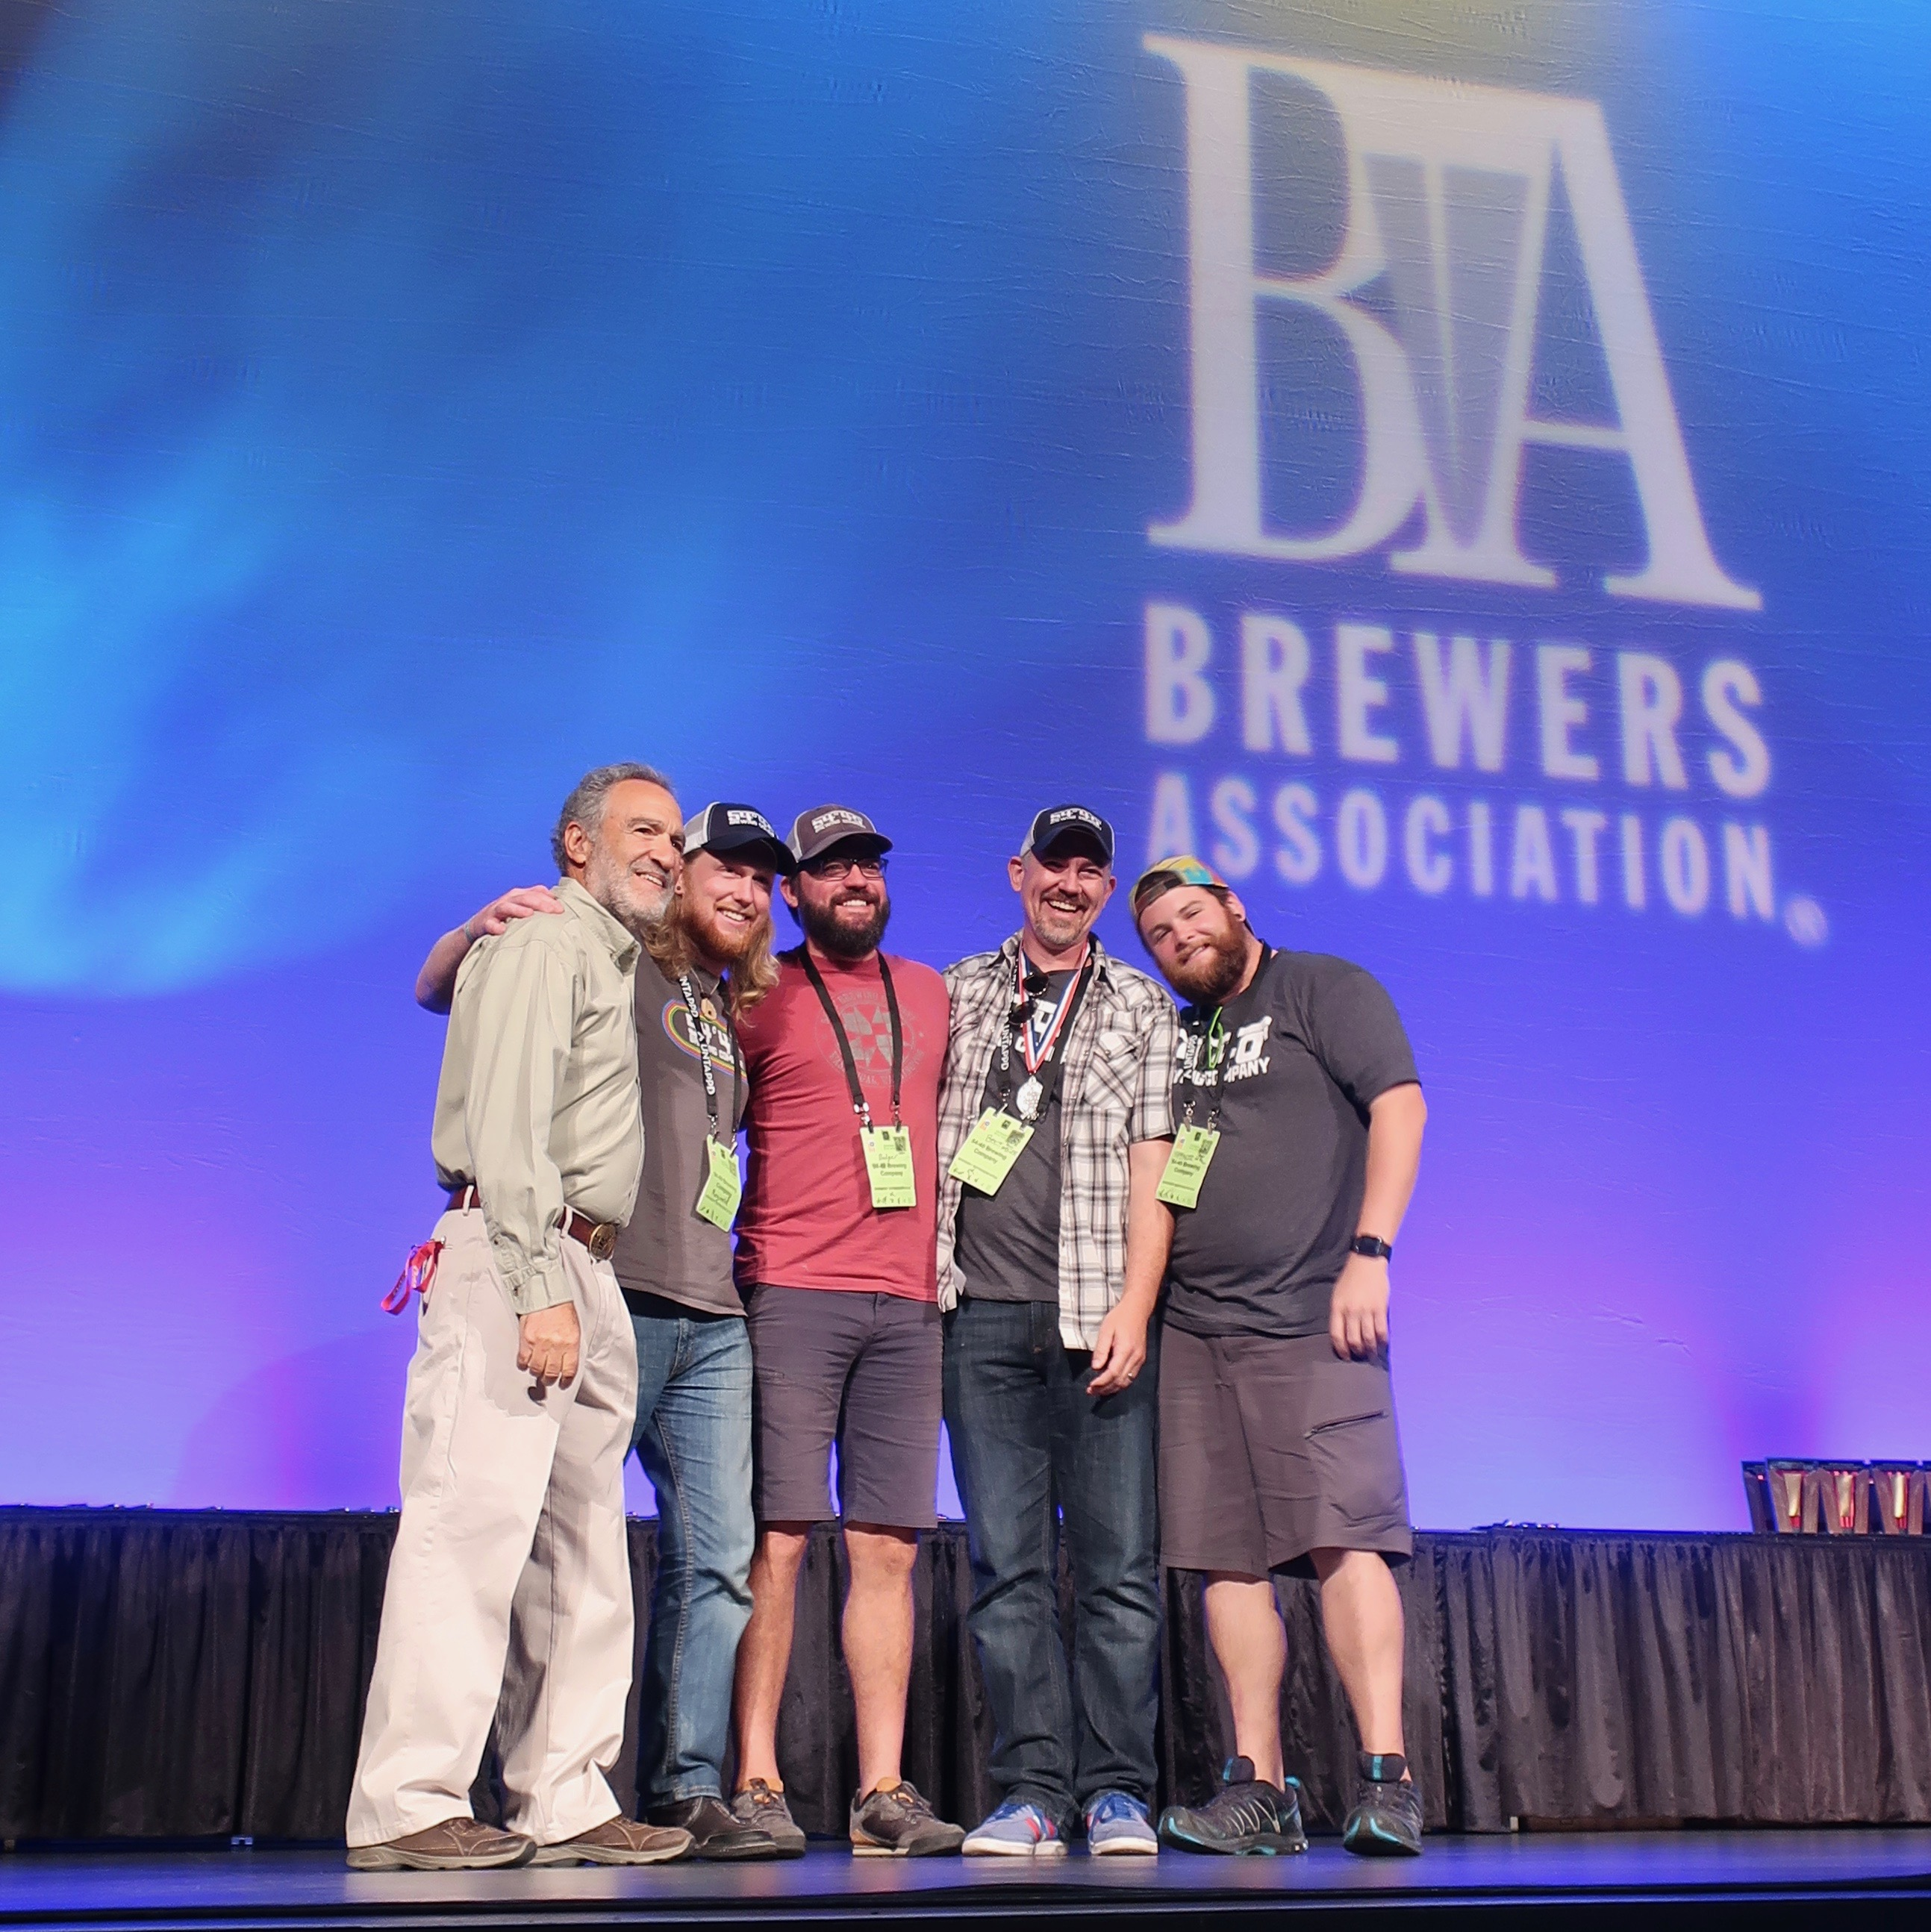 54°40' Brewing win a Silver Medal at the 2018 Great American Beer Festival.